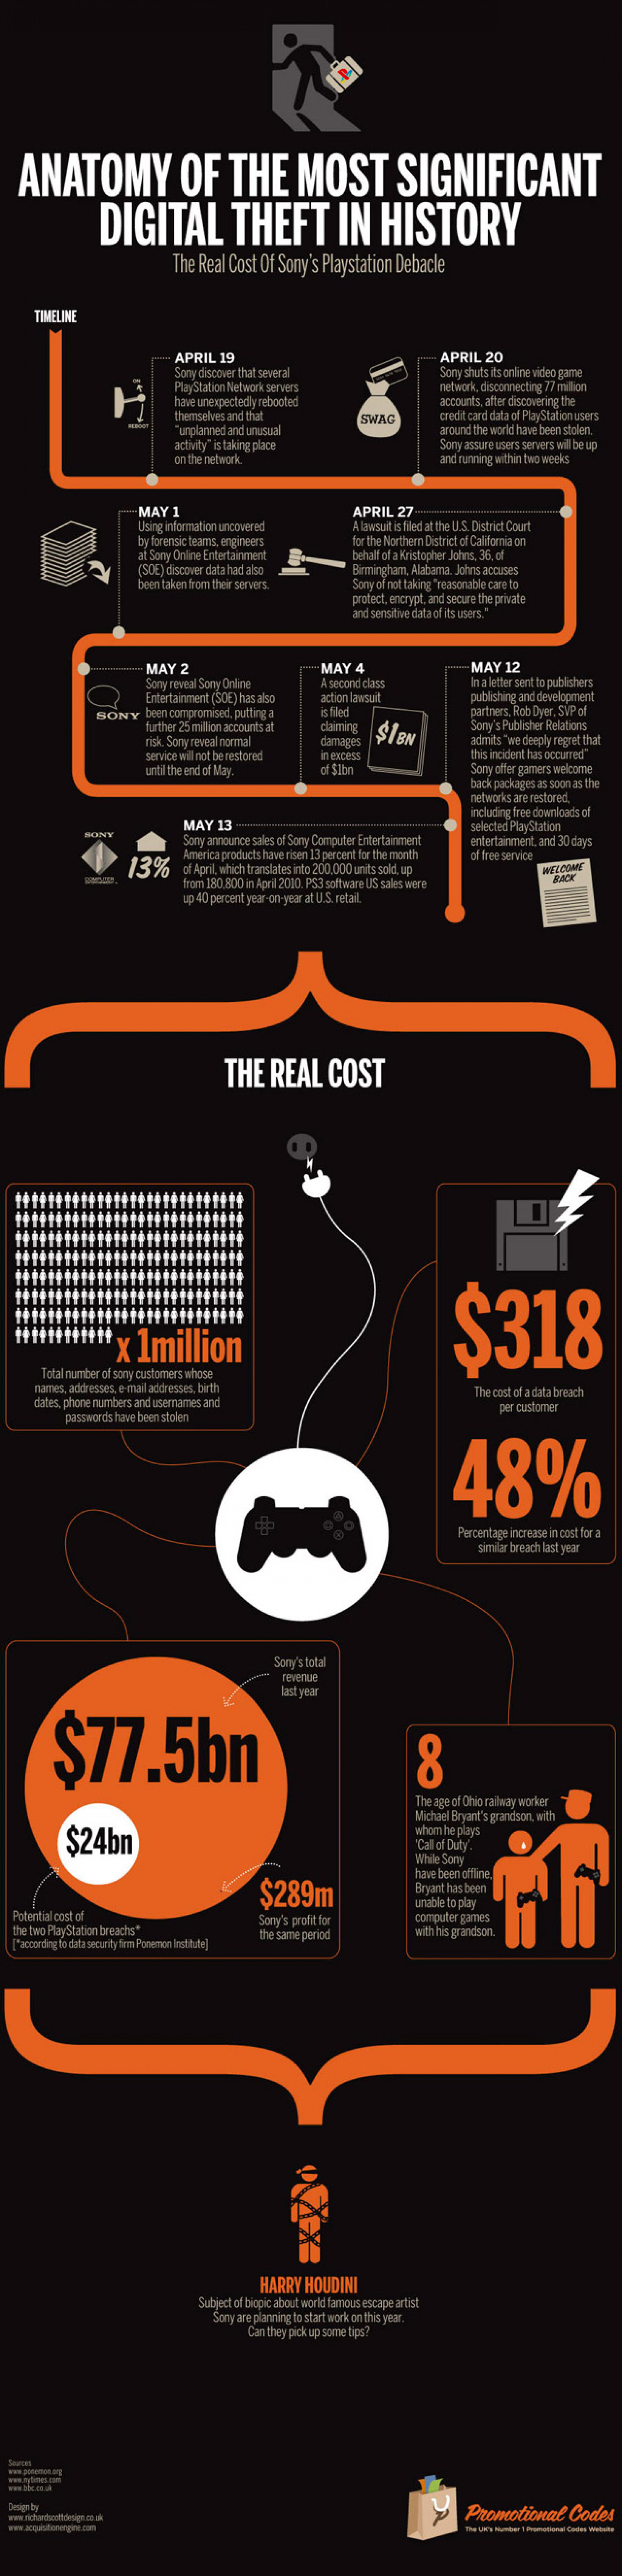 Anatomy of the Most Significant Digital Theft in History Infographic